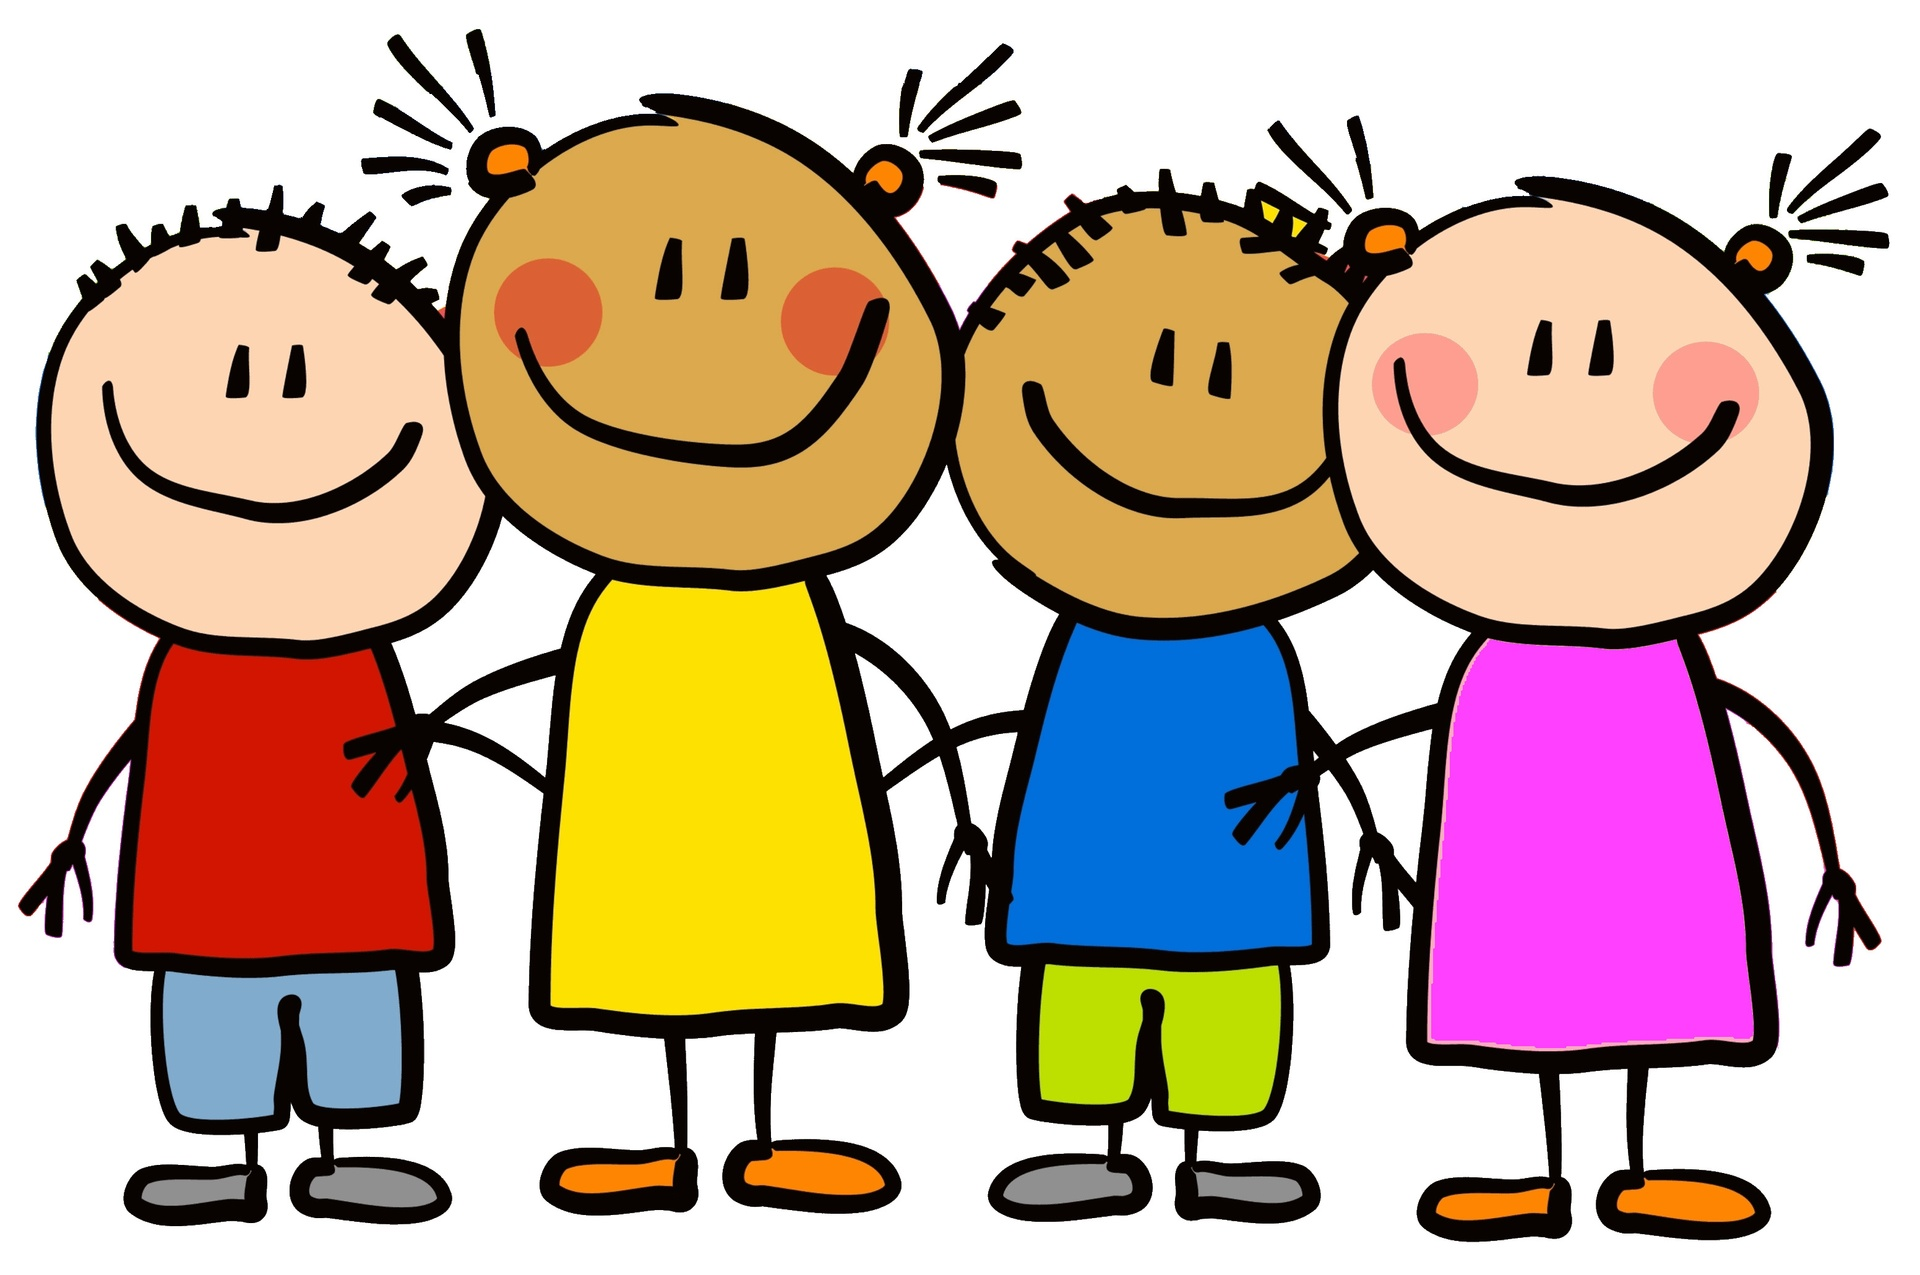 Clipart for child care image Daycare Clipart | Free download best Daycare Clipart on ClipArtMag.com image